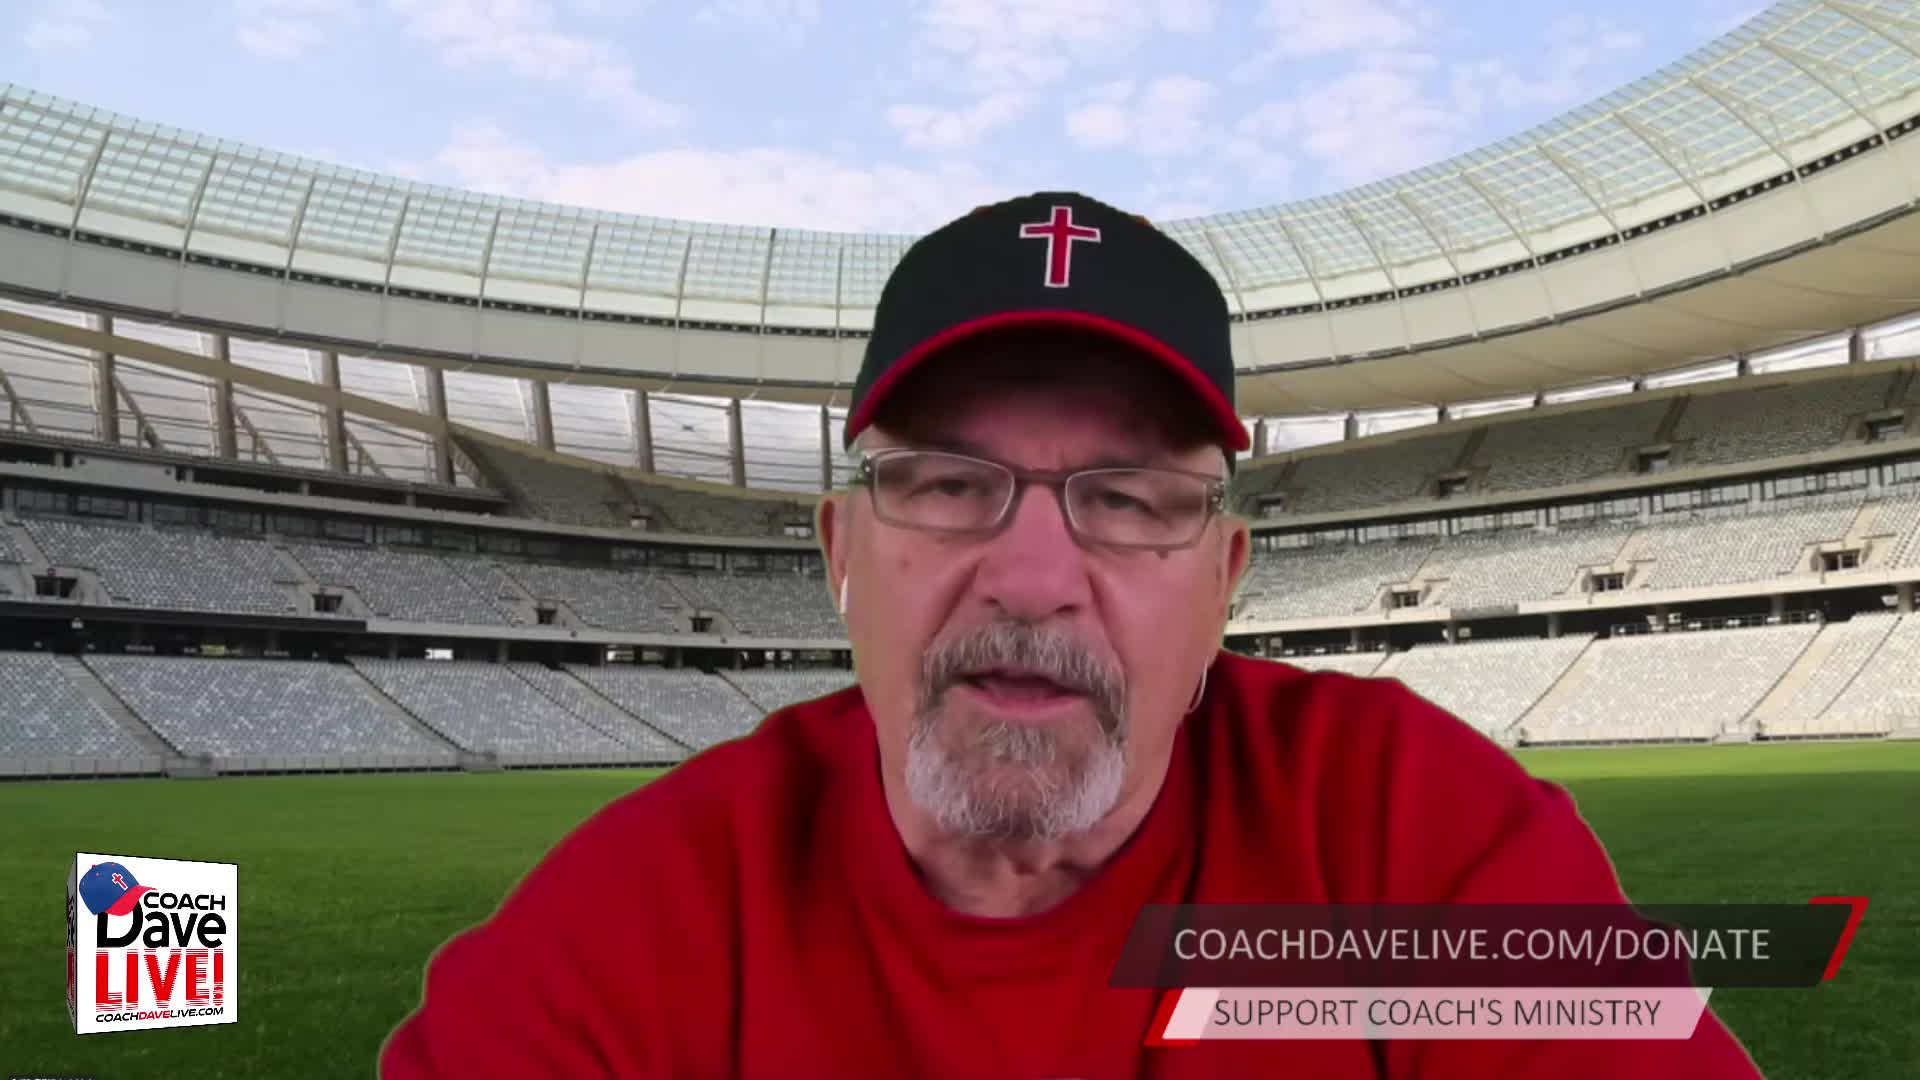 Coach Dave LIVE   3-15-2021   JESUS TOLD PETER THAT HE HAD TO BE CONVERTED - AUDIO ONLY